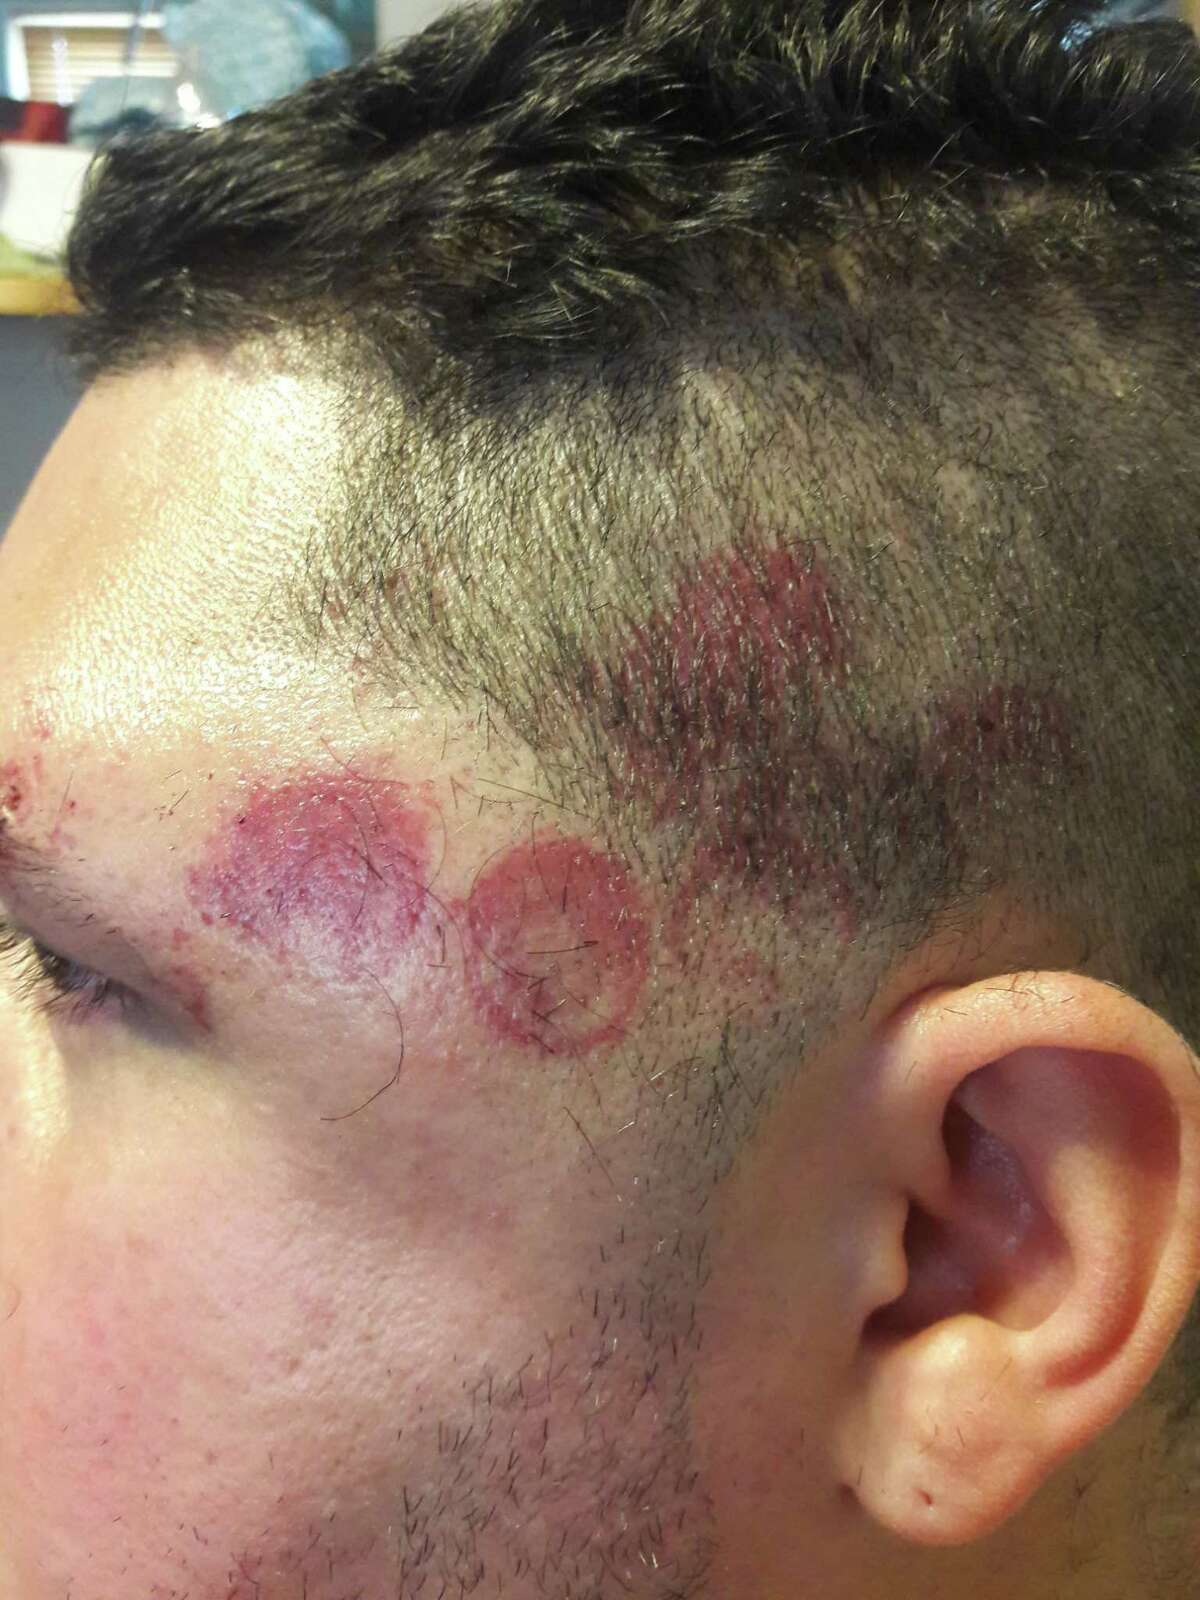 Carmelo Mendez said police made these marks on his head when they broke up a Halloween party in 2017.